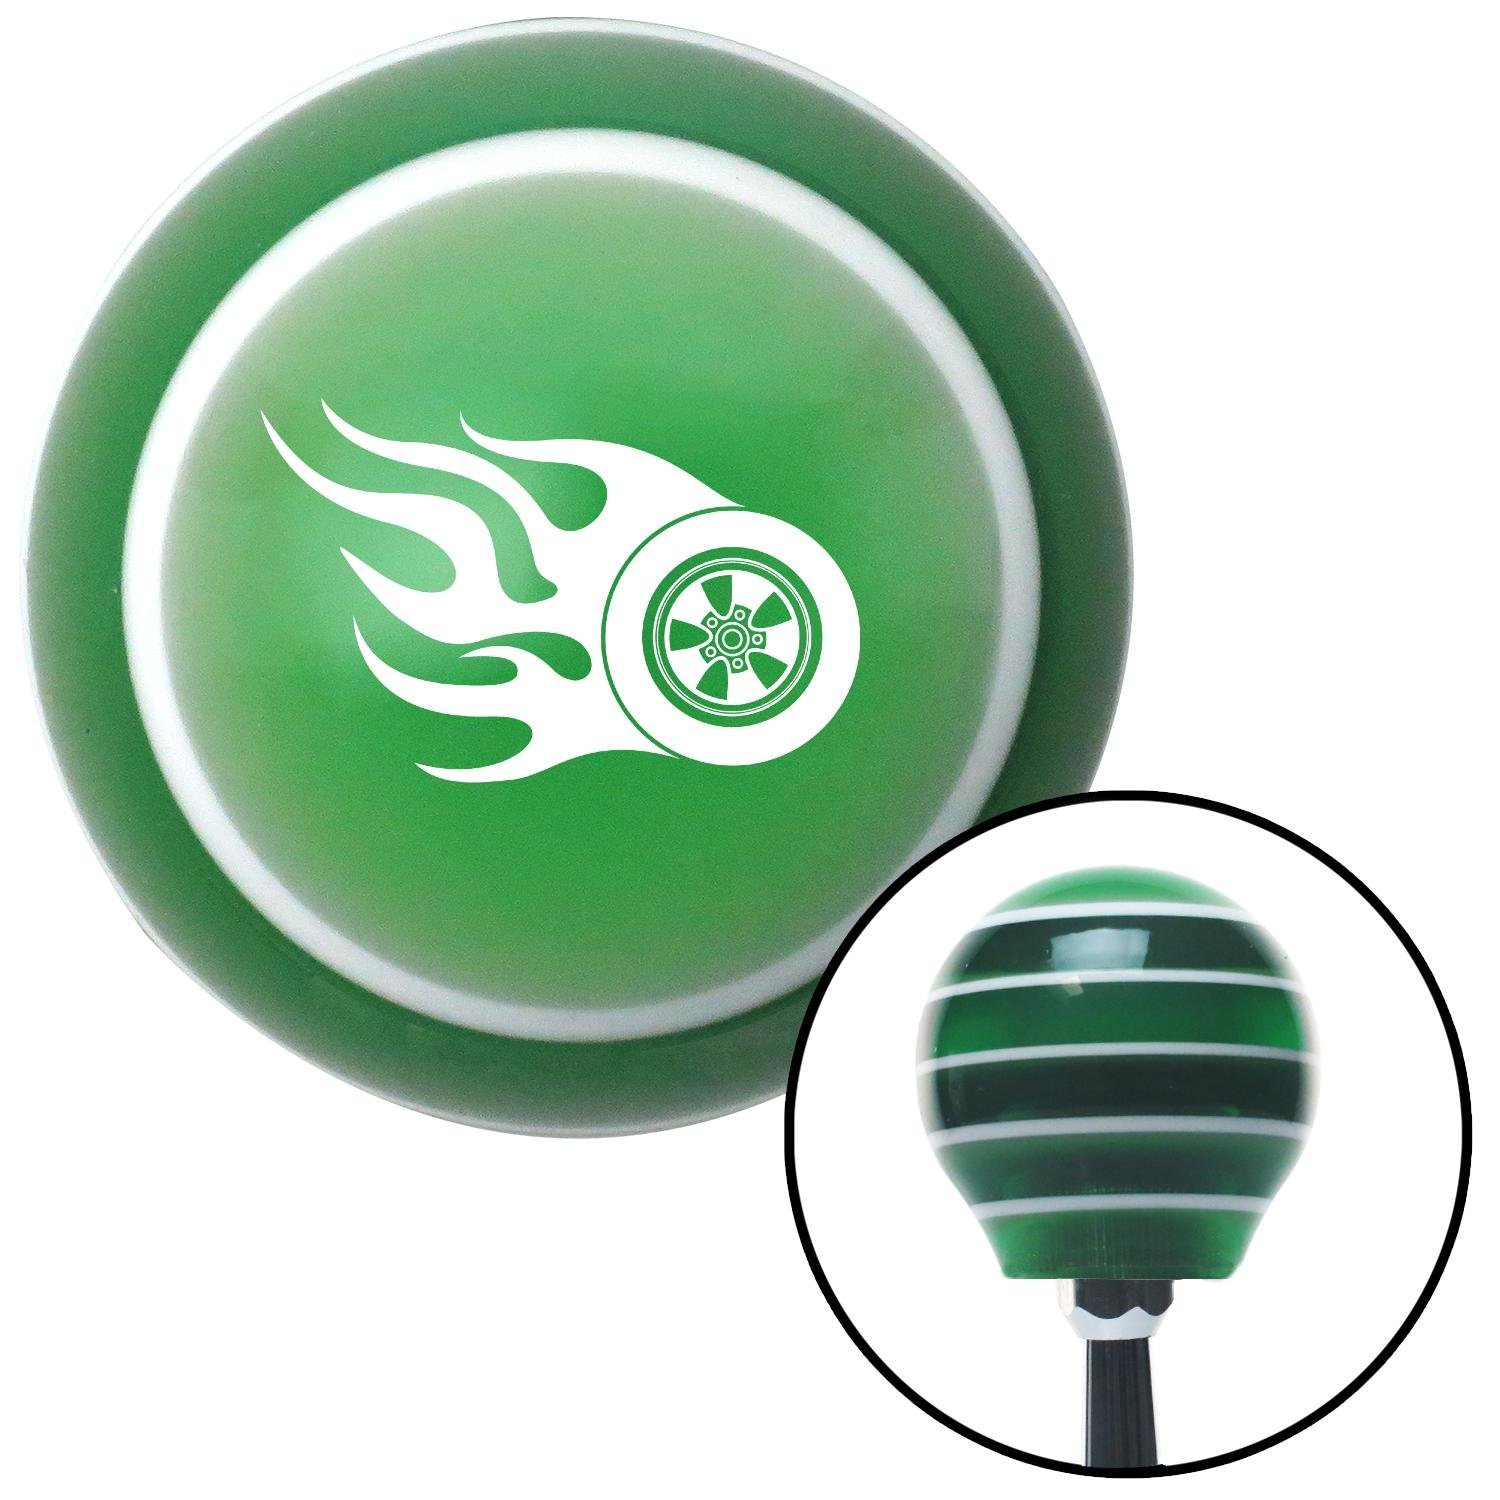 White Wheel On Fire American Shifter 121591 Green Stripe Shift Knob with M16 x 1.5 Insert